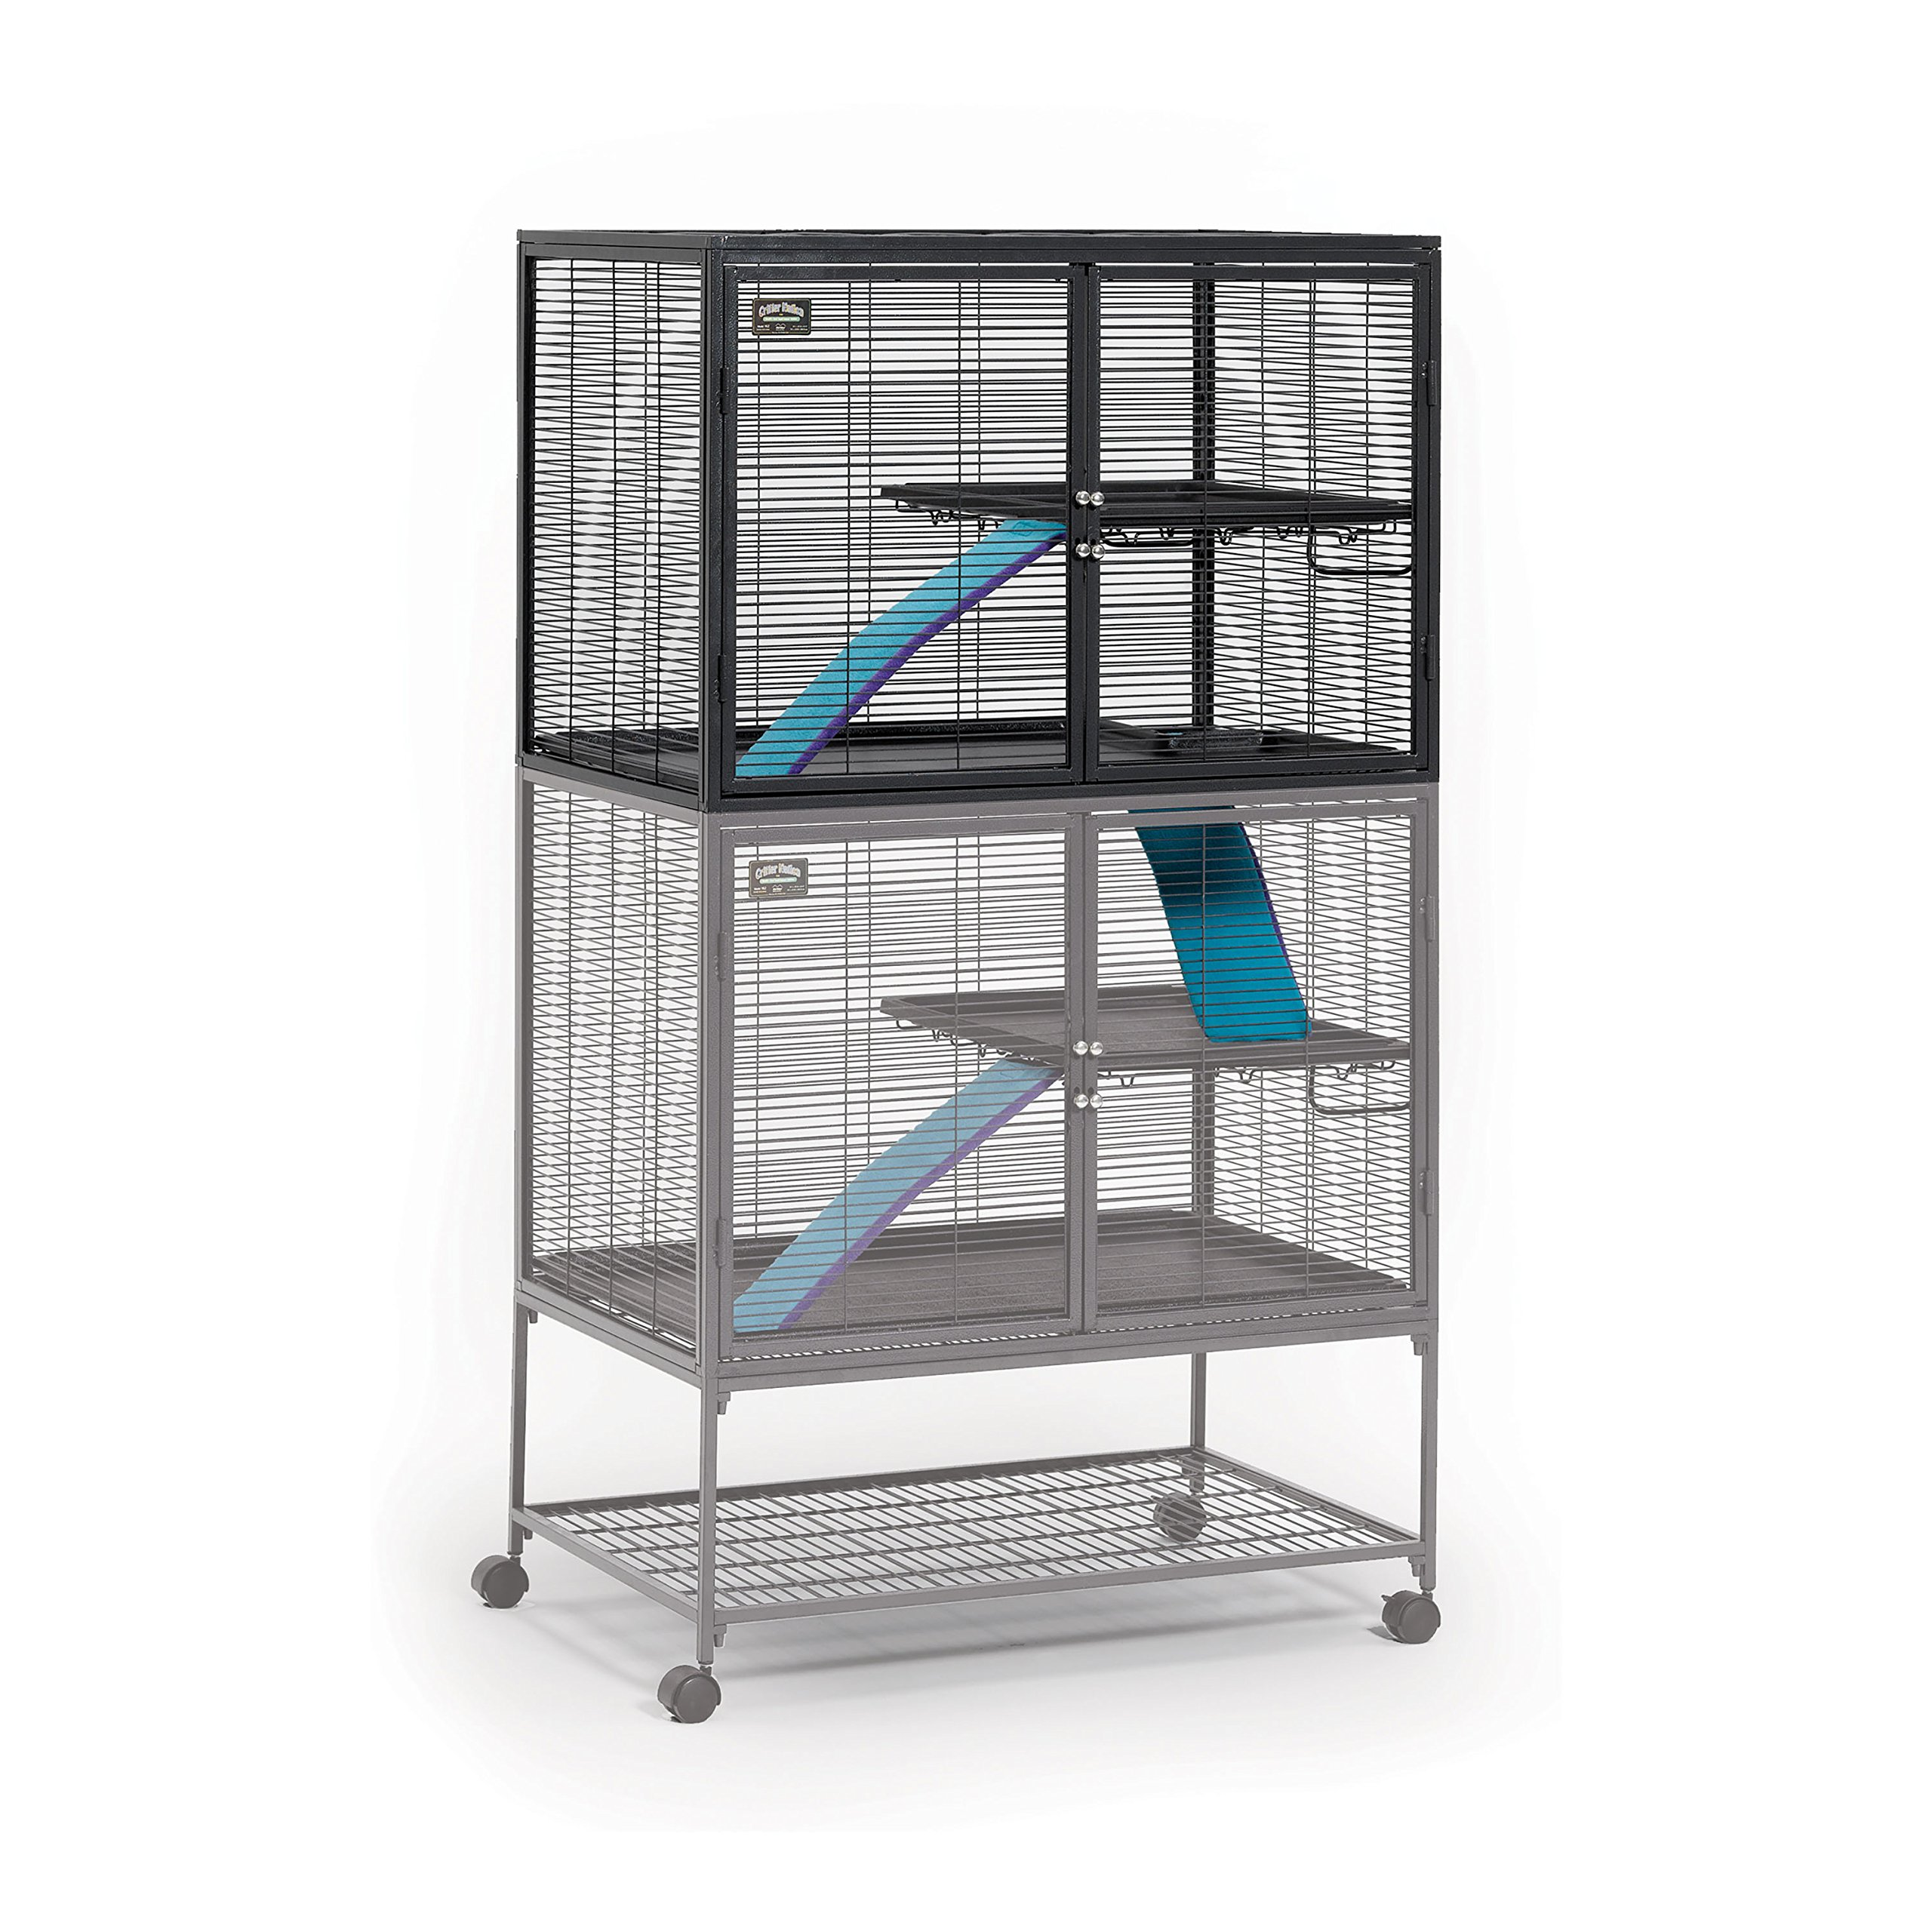 Midwest Deluxe Critter Nation Add-On Unit Small Animal Cage (Model 163) Includes 1 Leak-Proof Pan, 1 Shelf, 1 Ramp w/Ramp Cover. Compatible w/Critter Nation Models 161 & 162 by MidWest Homes for Pets